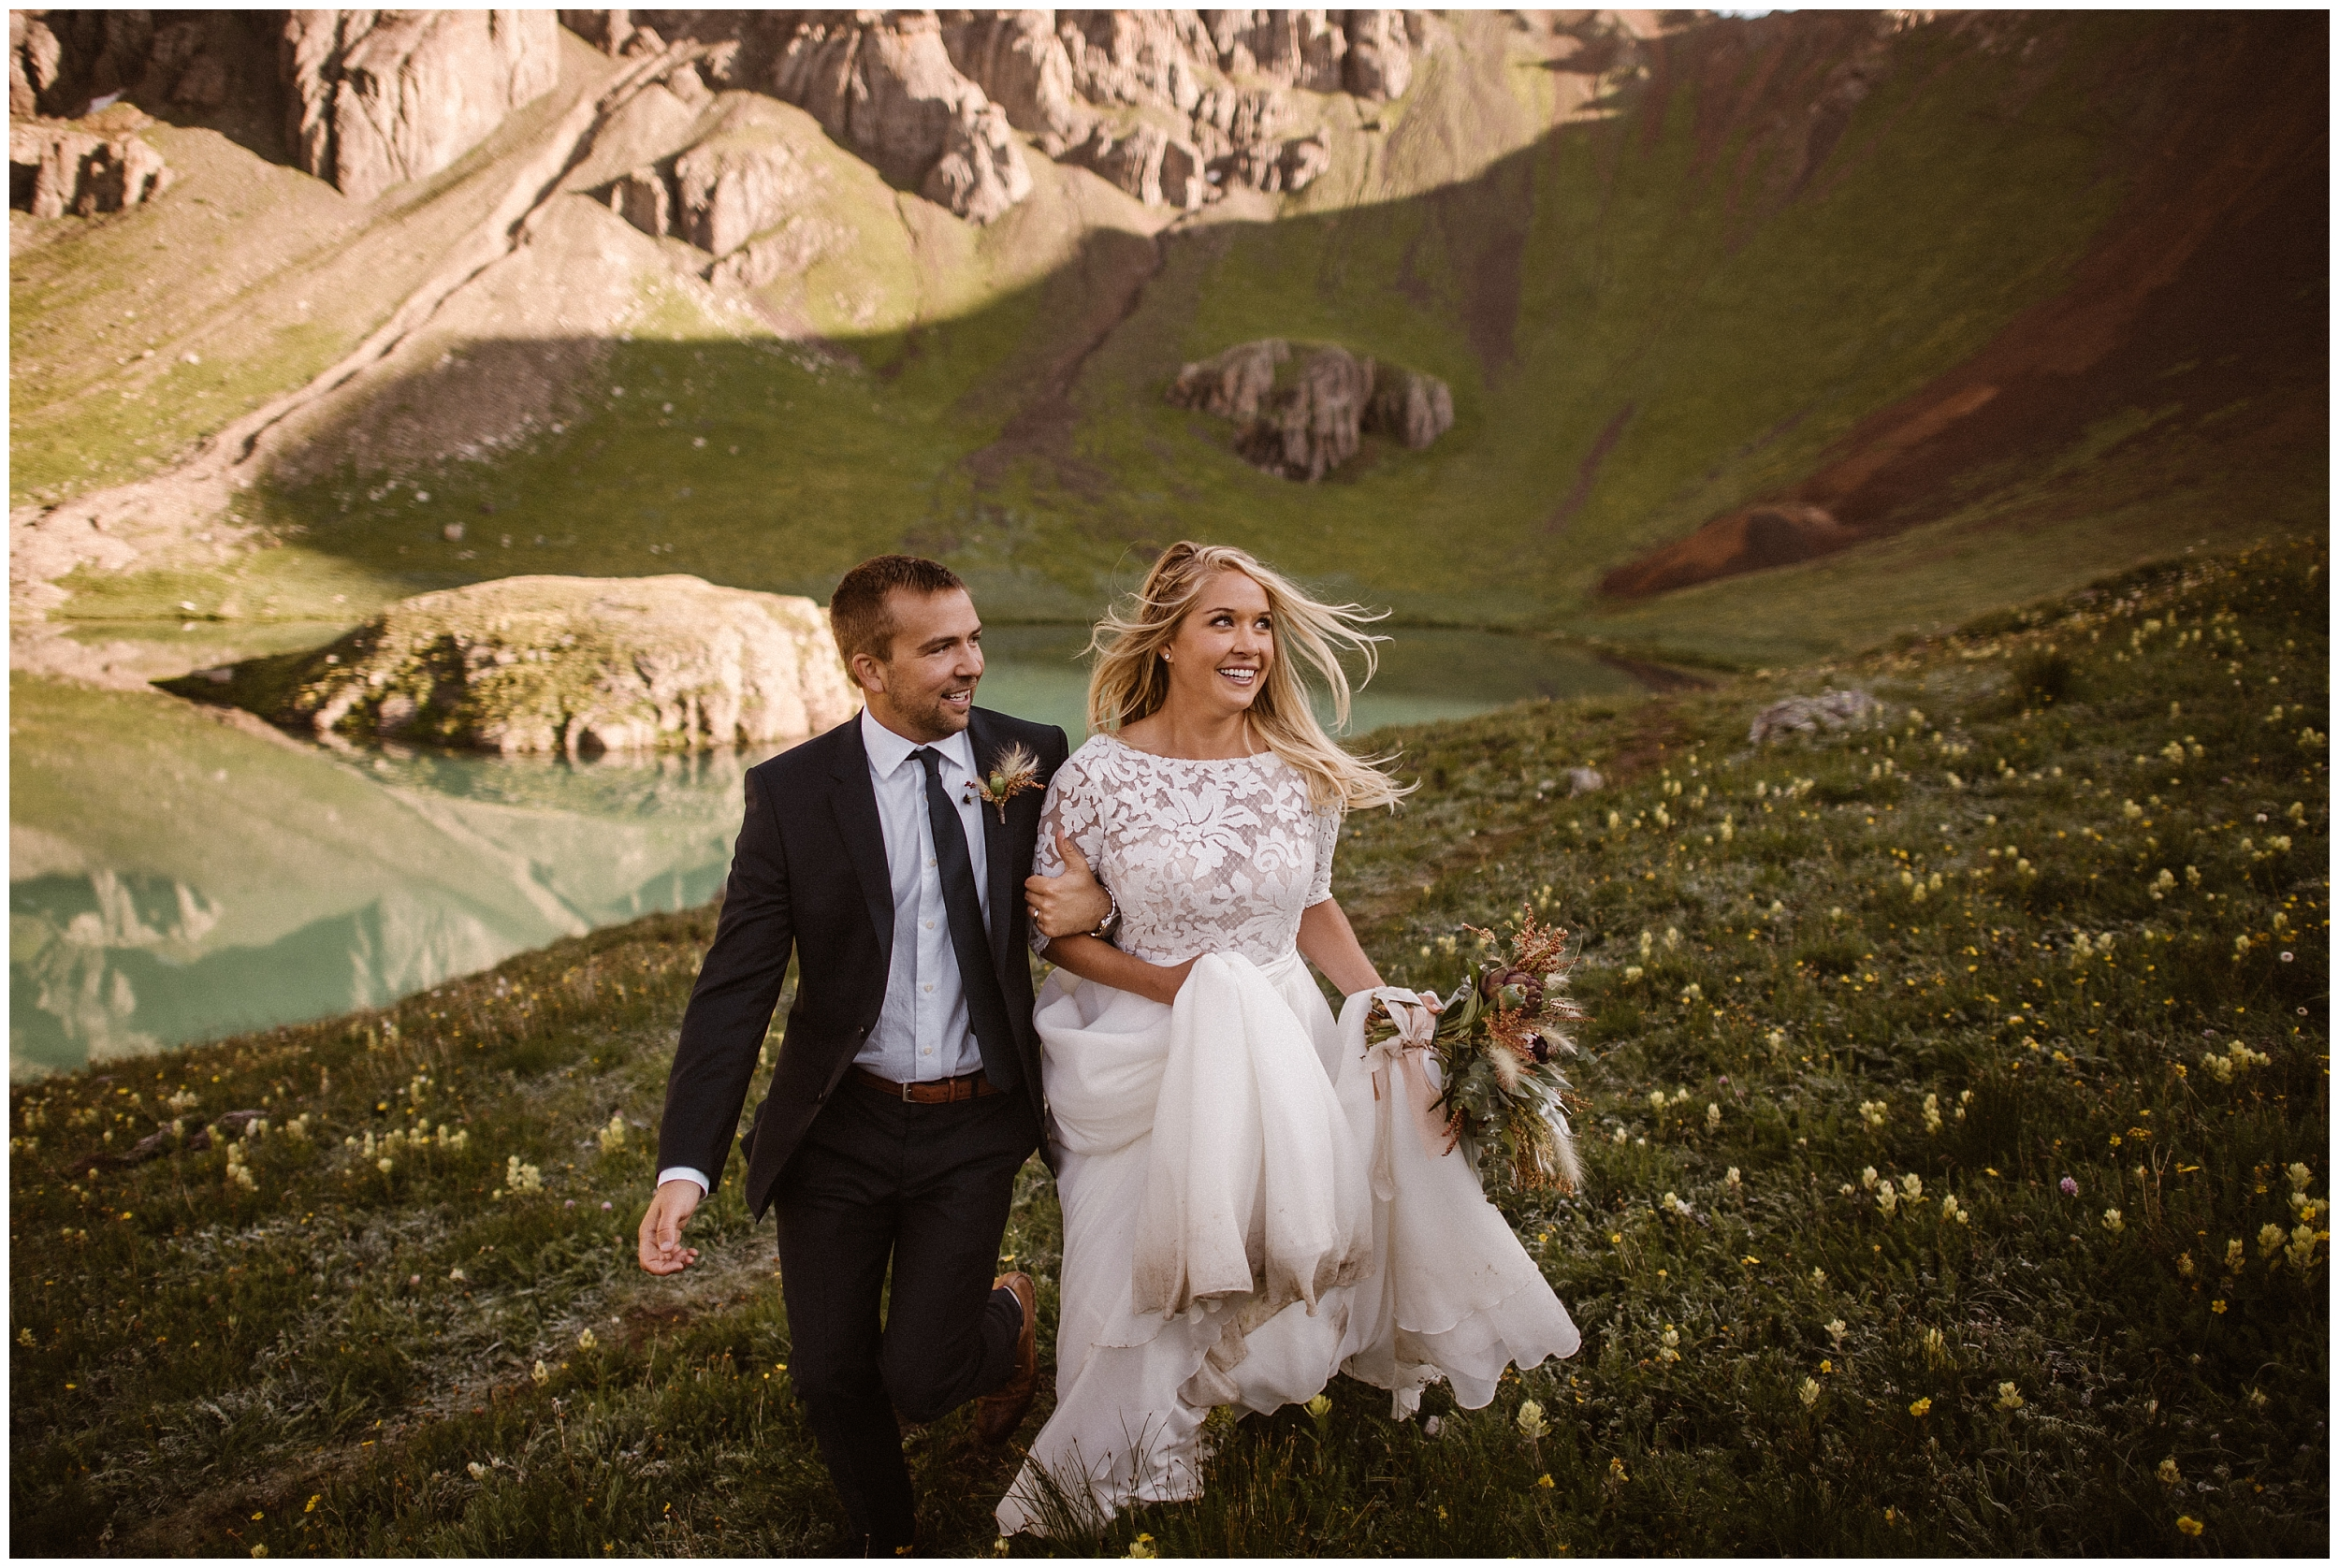 Having the destination elopement of your wildest dreams in the best places to elope can totally happen for you—and doing it while abiding by the Leave No Trace Principles is totally possible, too! These elopement photos were captured by Adventure Instead, an elopement wedding photographer.